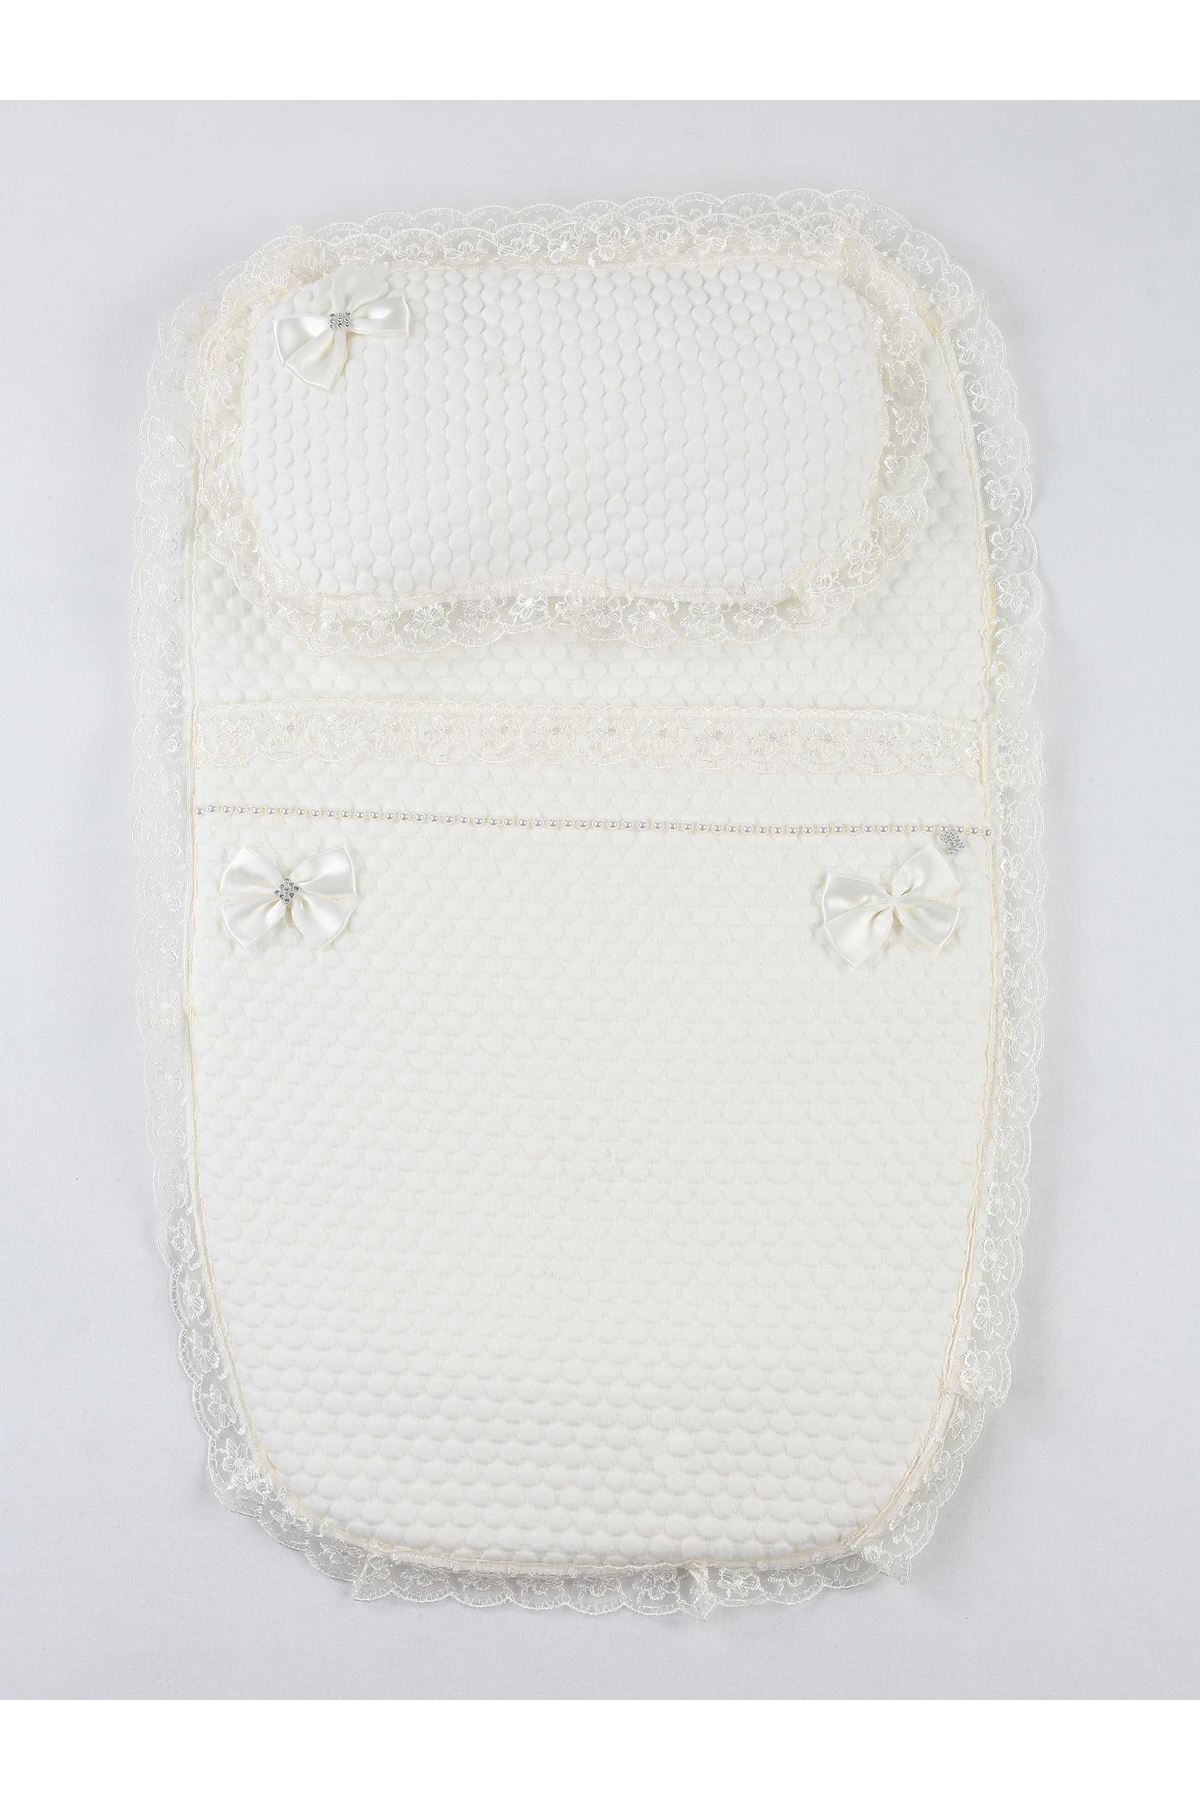 White Baby Swaddle Bottom Opening